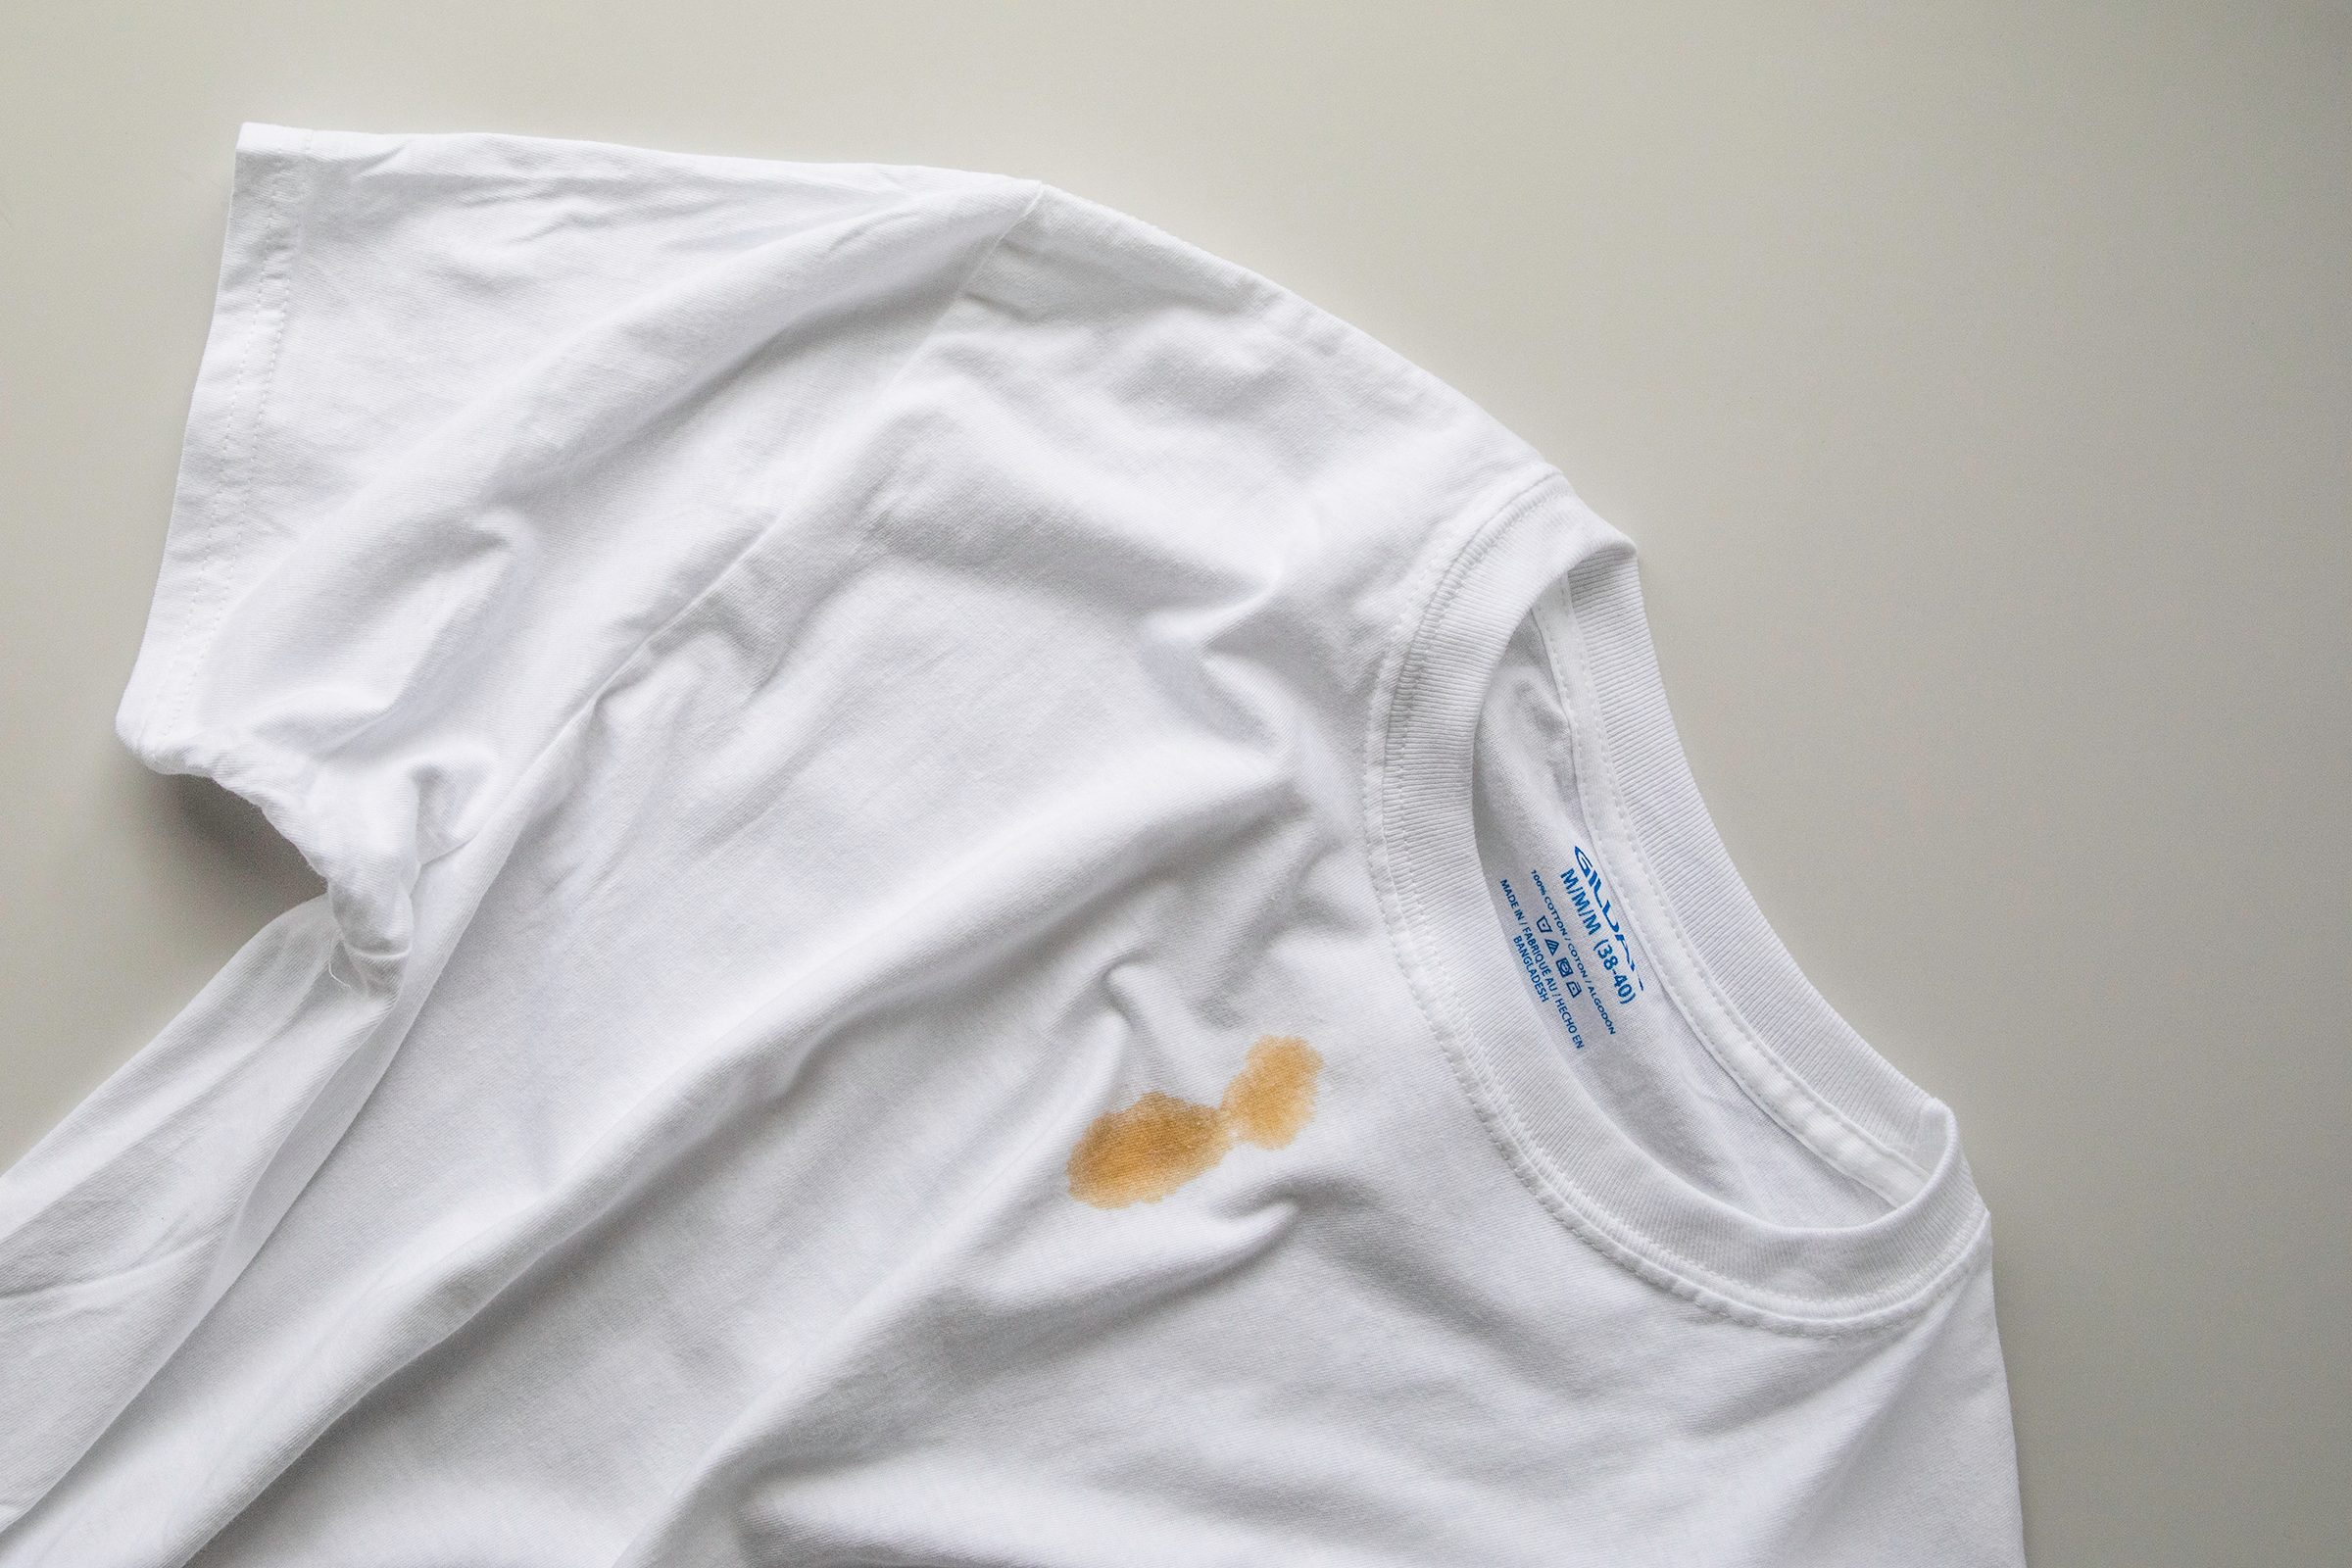 remove coffee stains from clothing